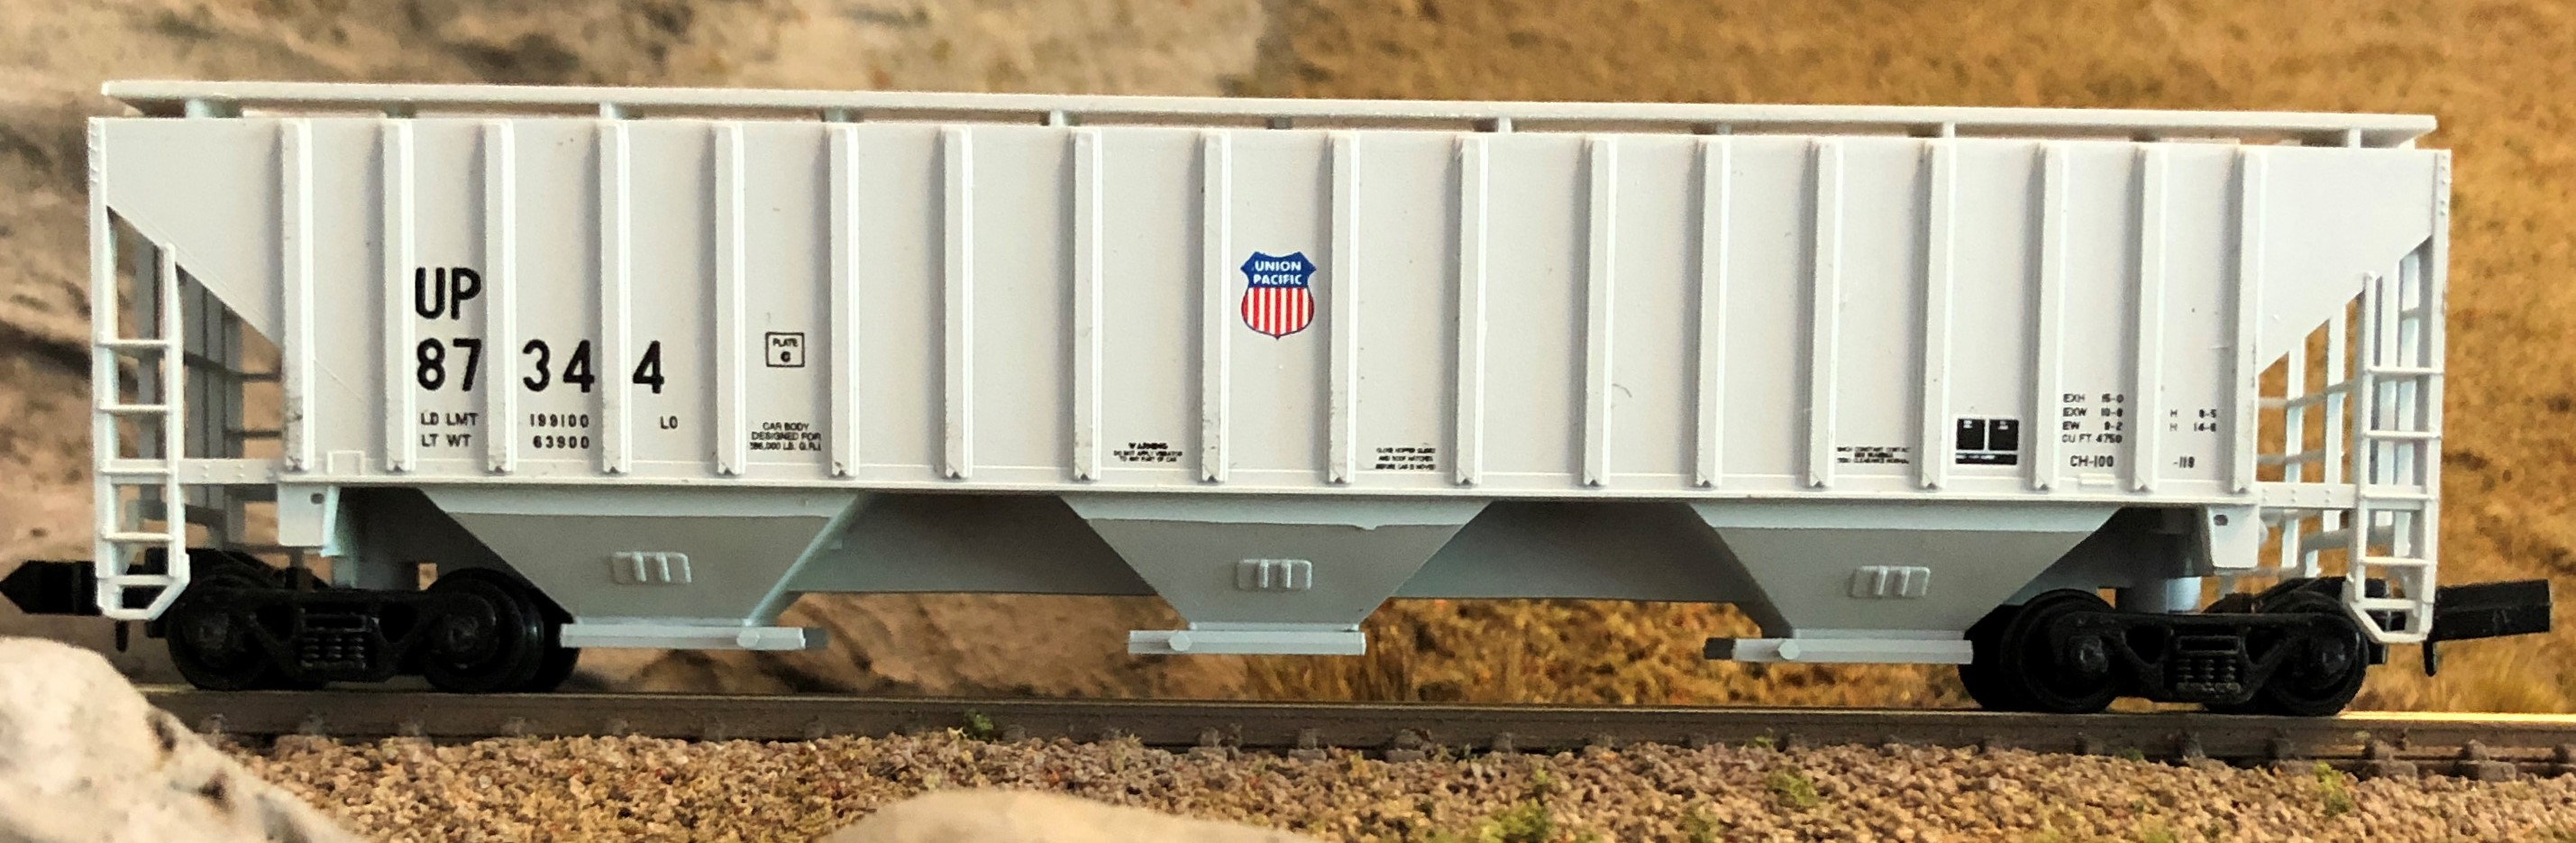 N Scale - Red Caboose - RM-15614-6 - Covered Hopper, 3-Bay, PS2-CD 4750 - Union Pacific - 87344